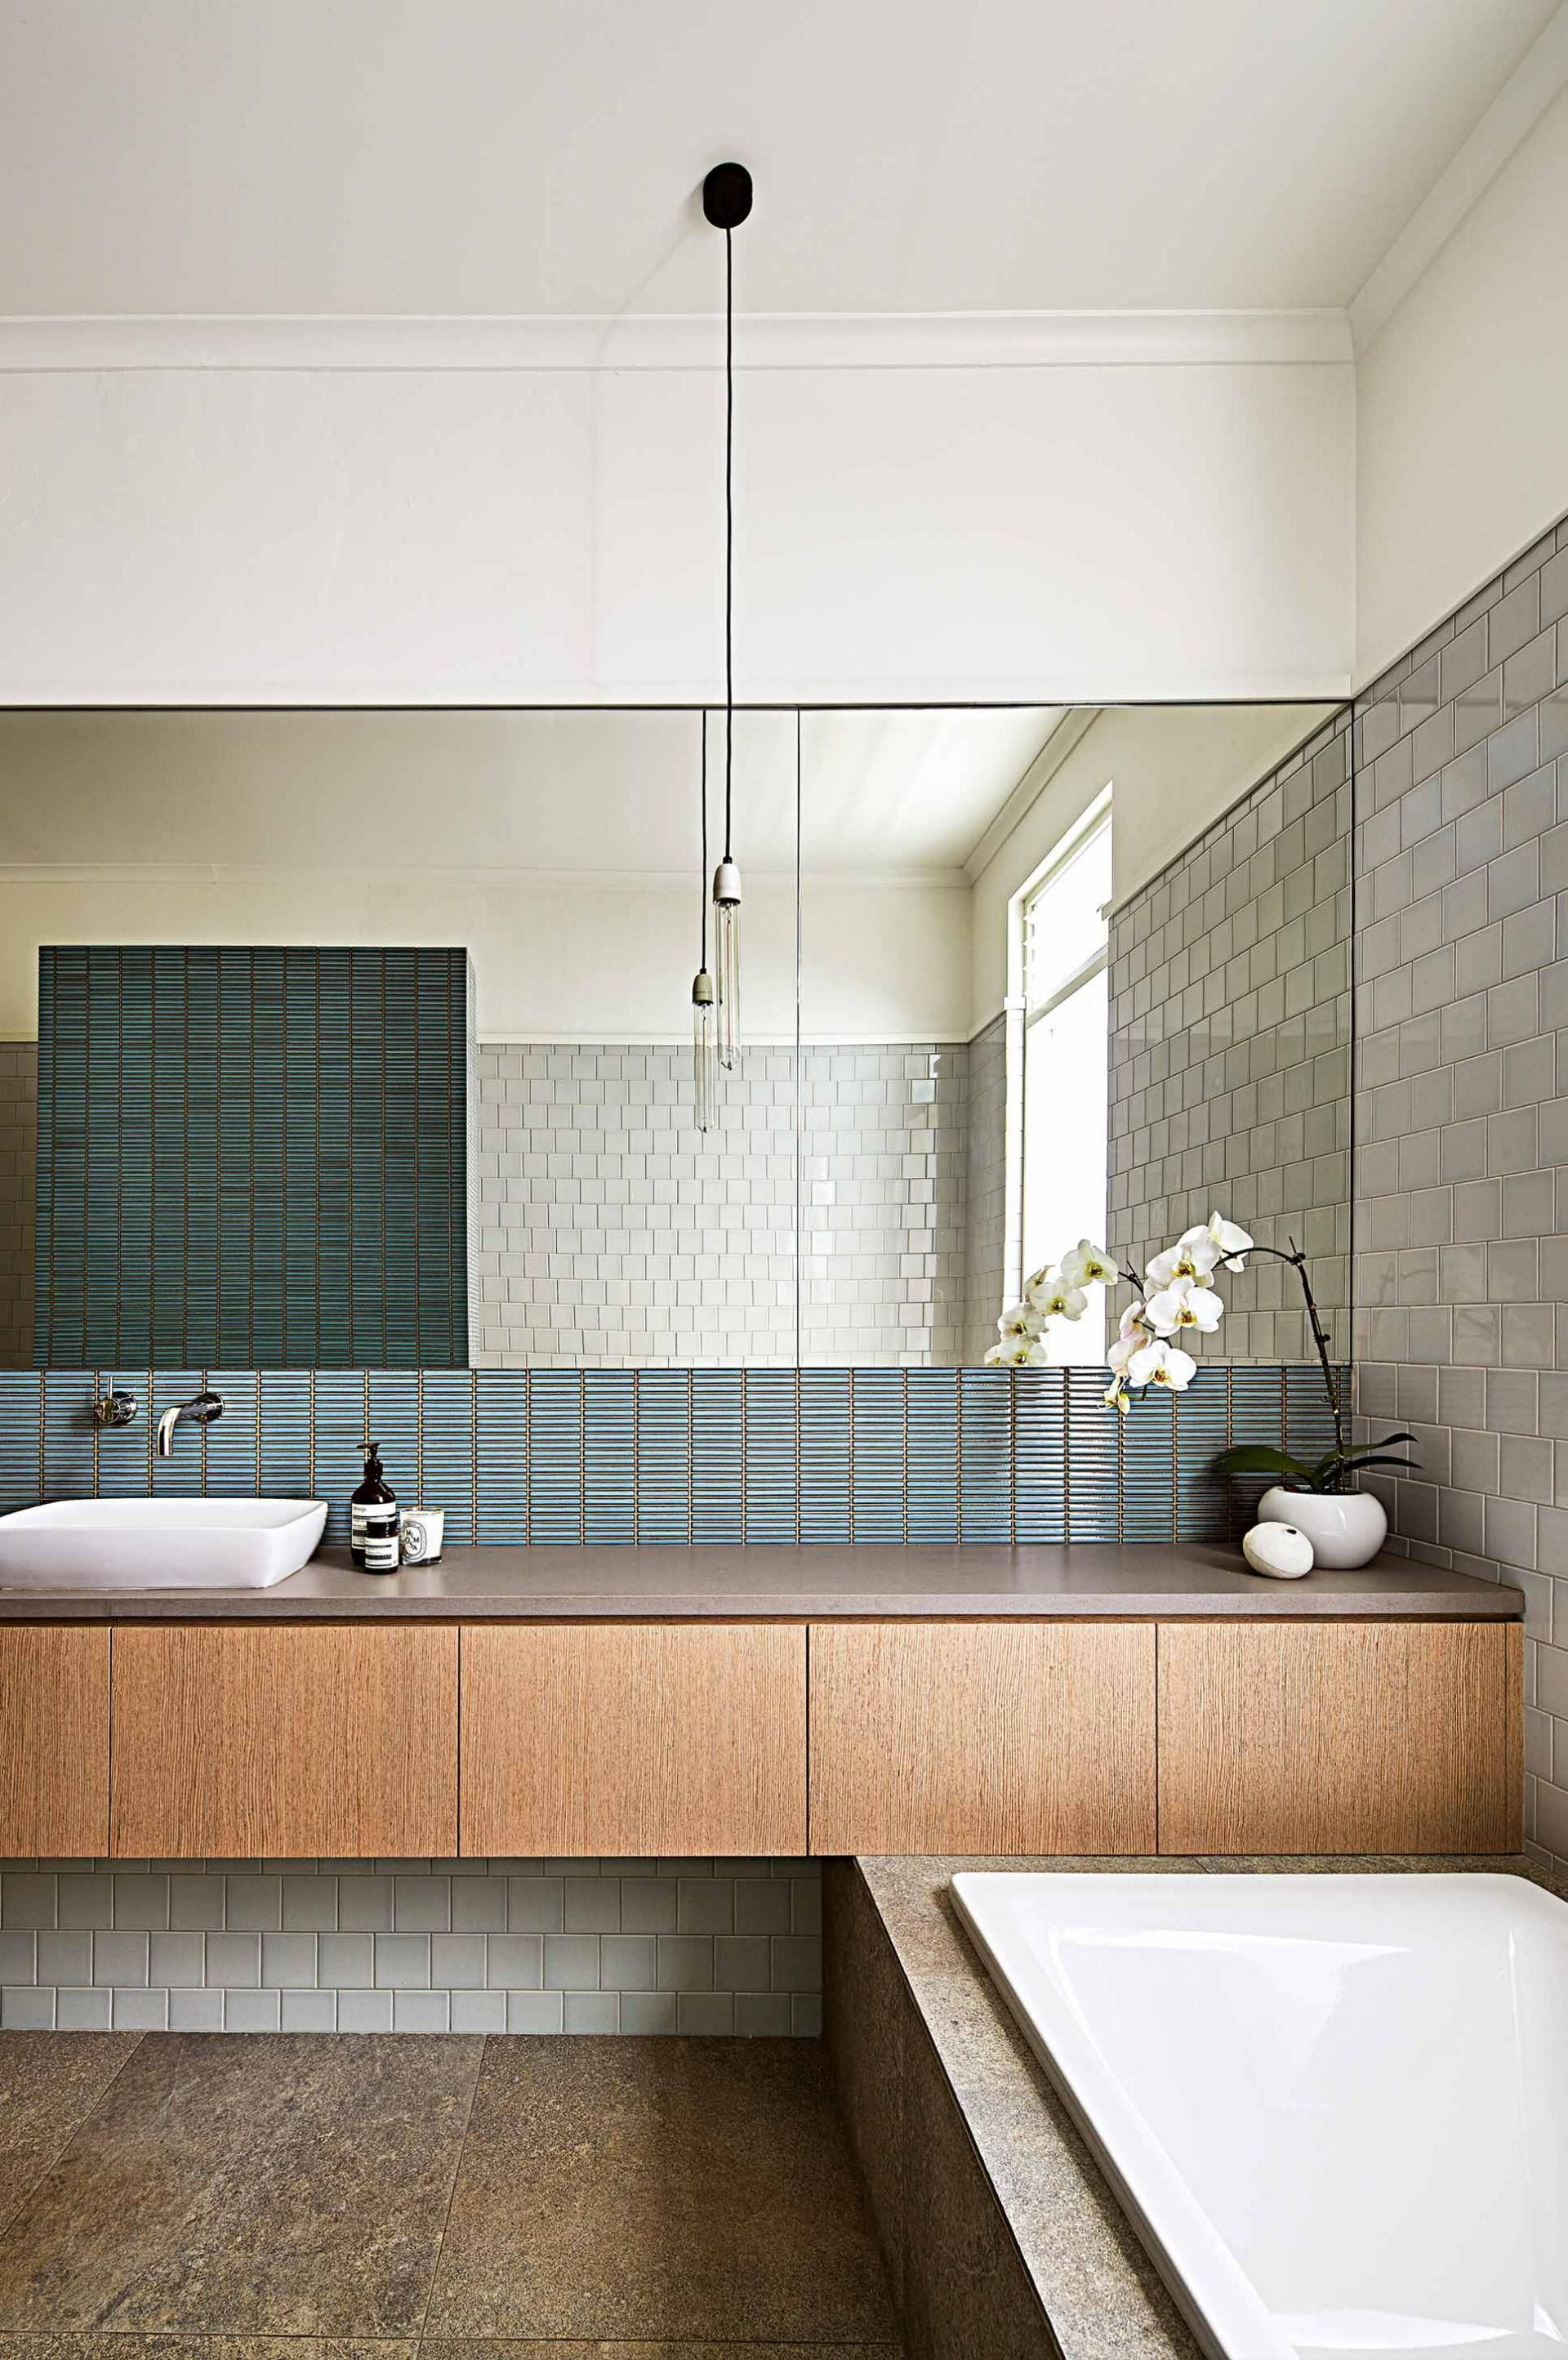 bathroom-tiles-bath-mirror-pendant-light-aug15 | bathroom ...